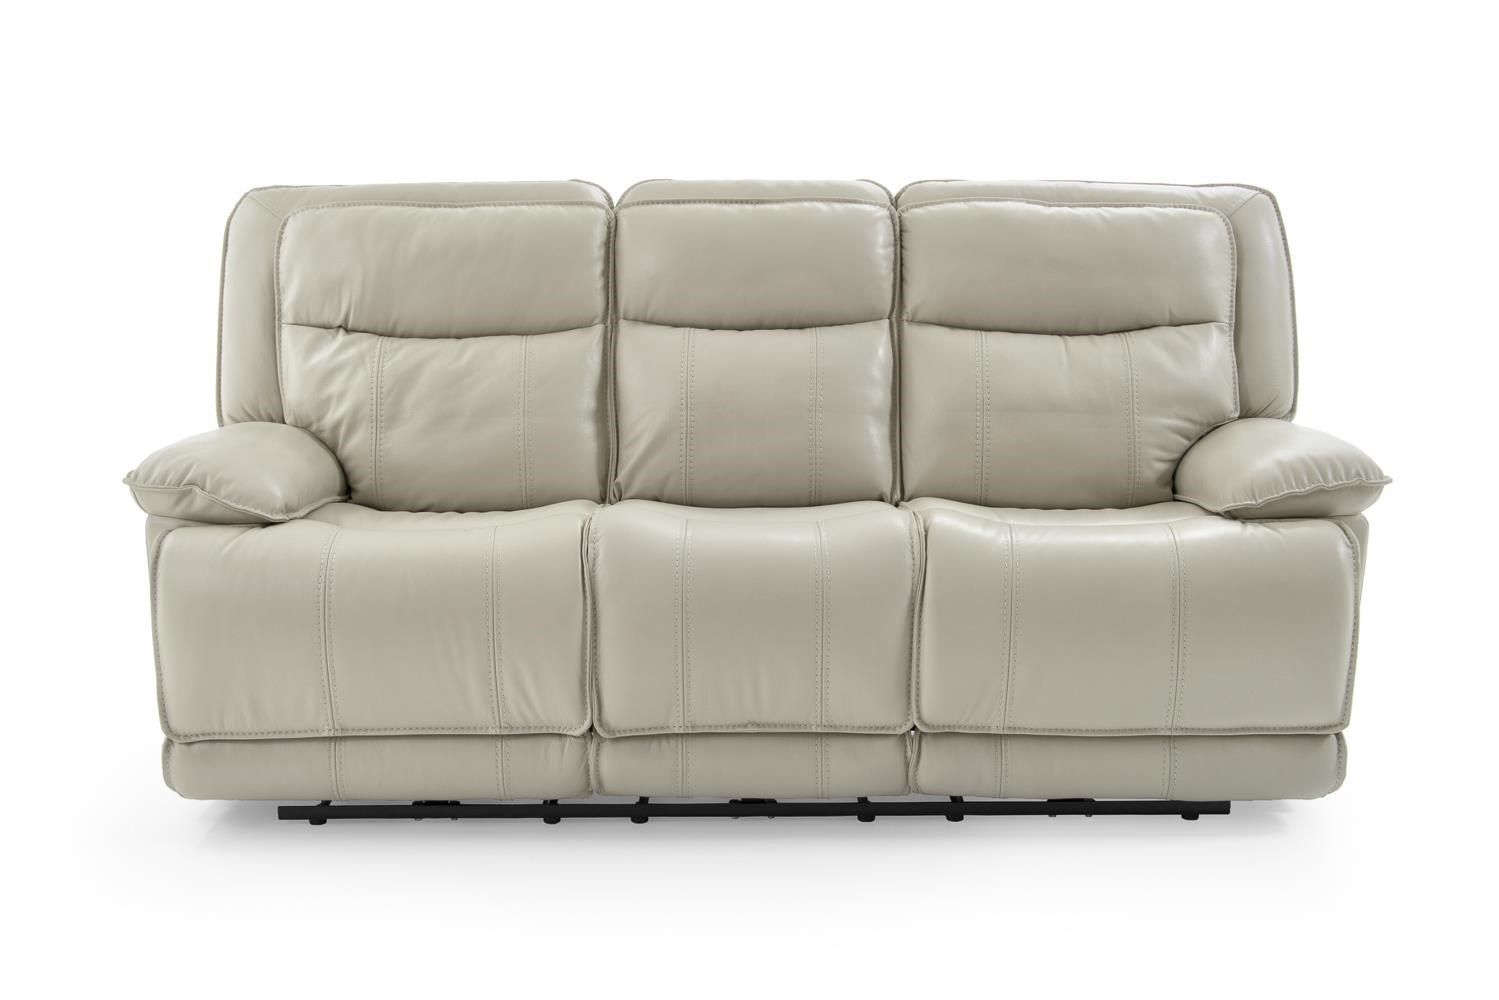 Kuka Home KM030 Casual Power Reclining Sofa w/ Three Recliners - Baeru0027s Furniture - Reclining Sofas  sc 1 st  Baeru0027s Furniture & Kuka Home KM030 Casual Power Reclining Sofa w/ Three Recliners ... islam-shia.org